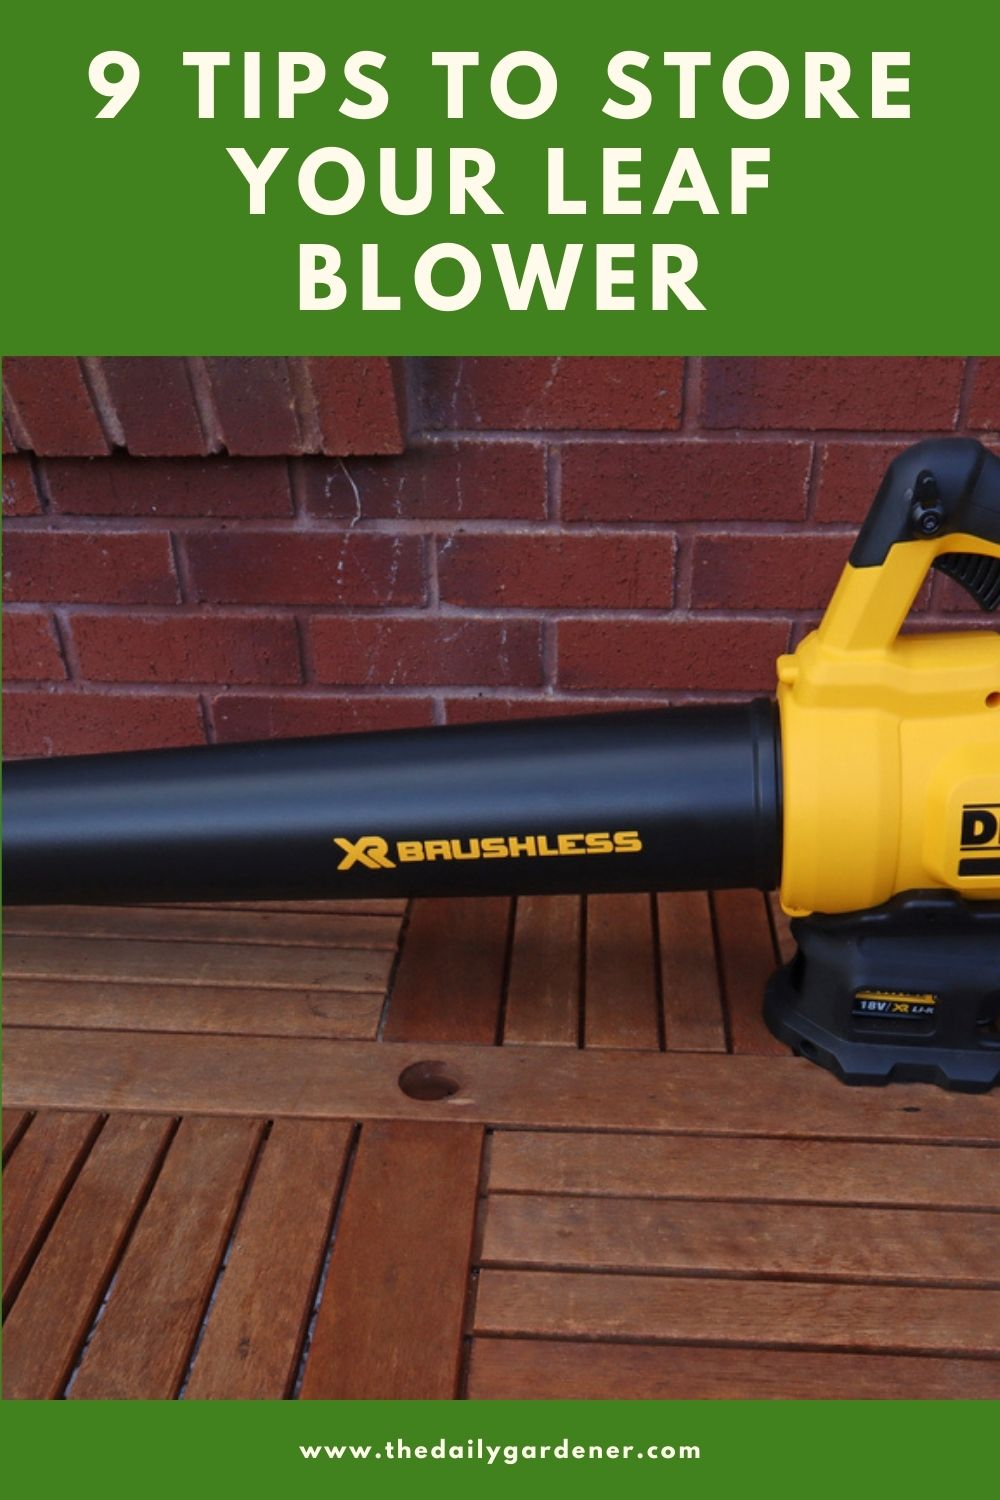 9 Tips to Store Your Leaf Blower 2